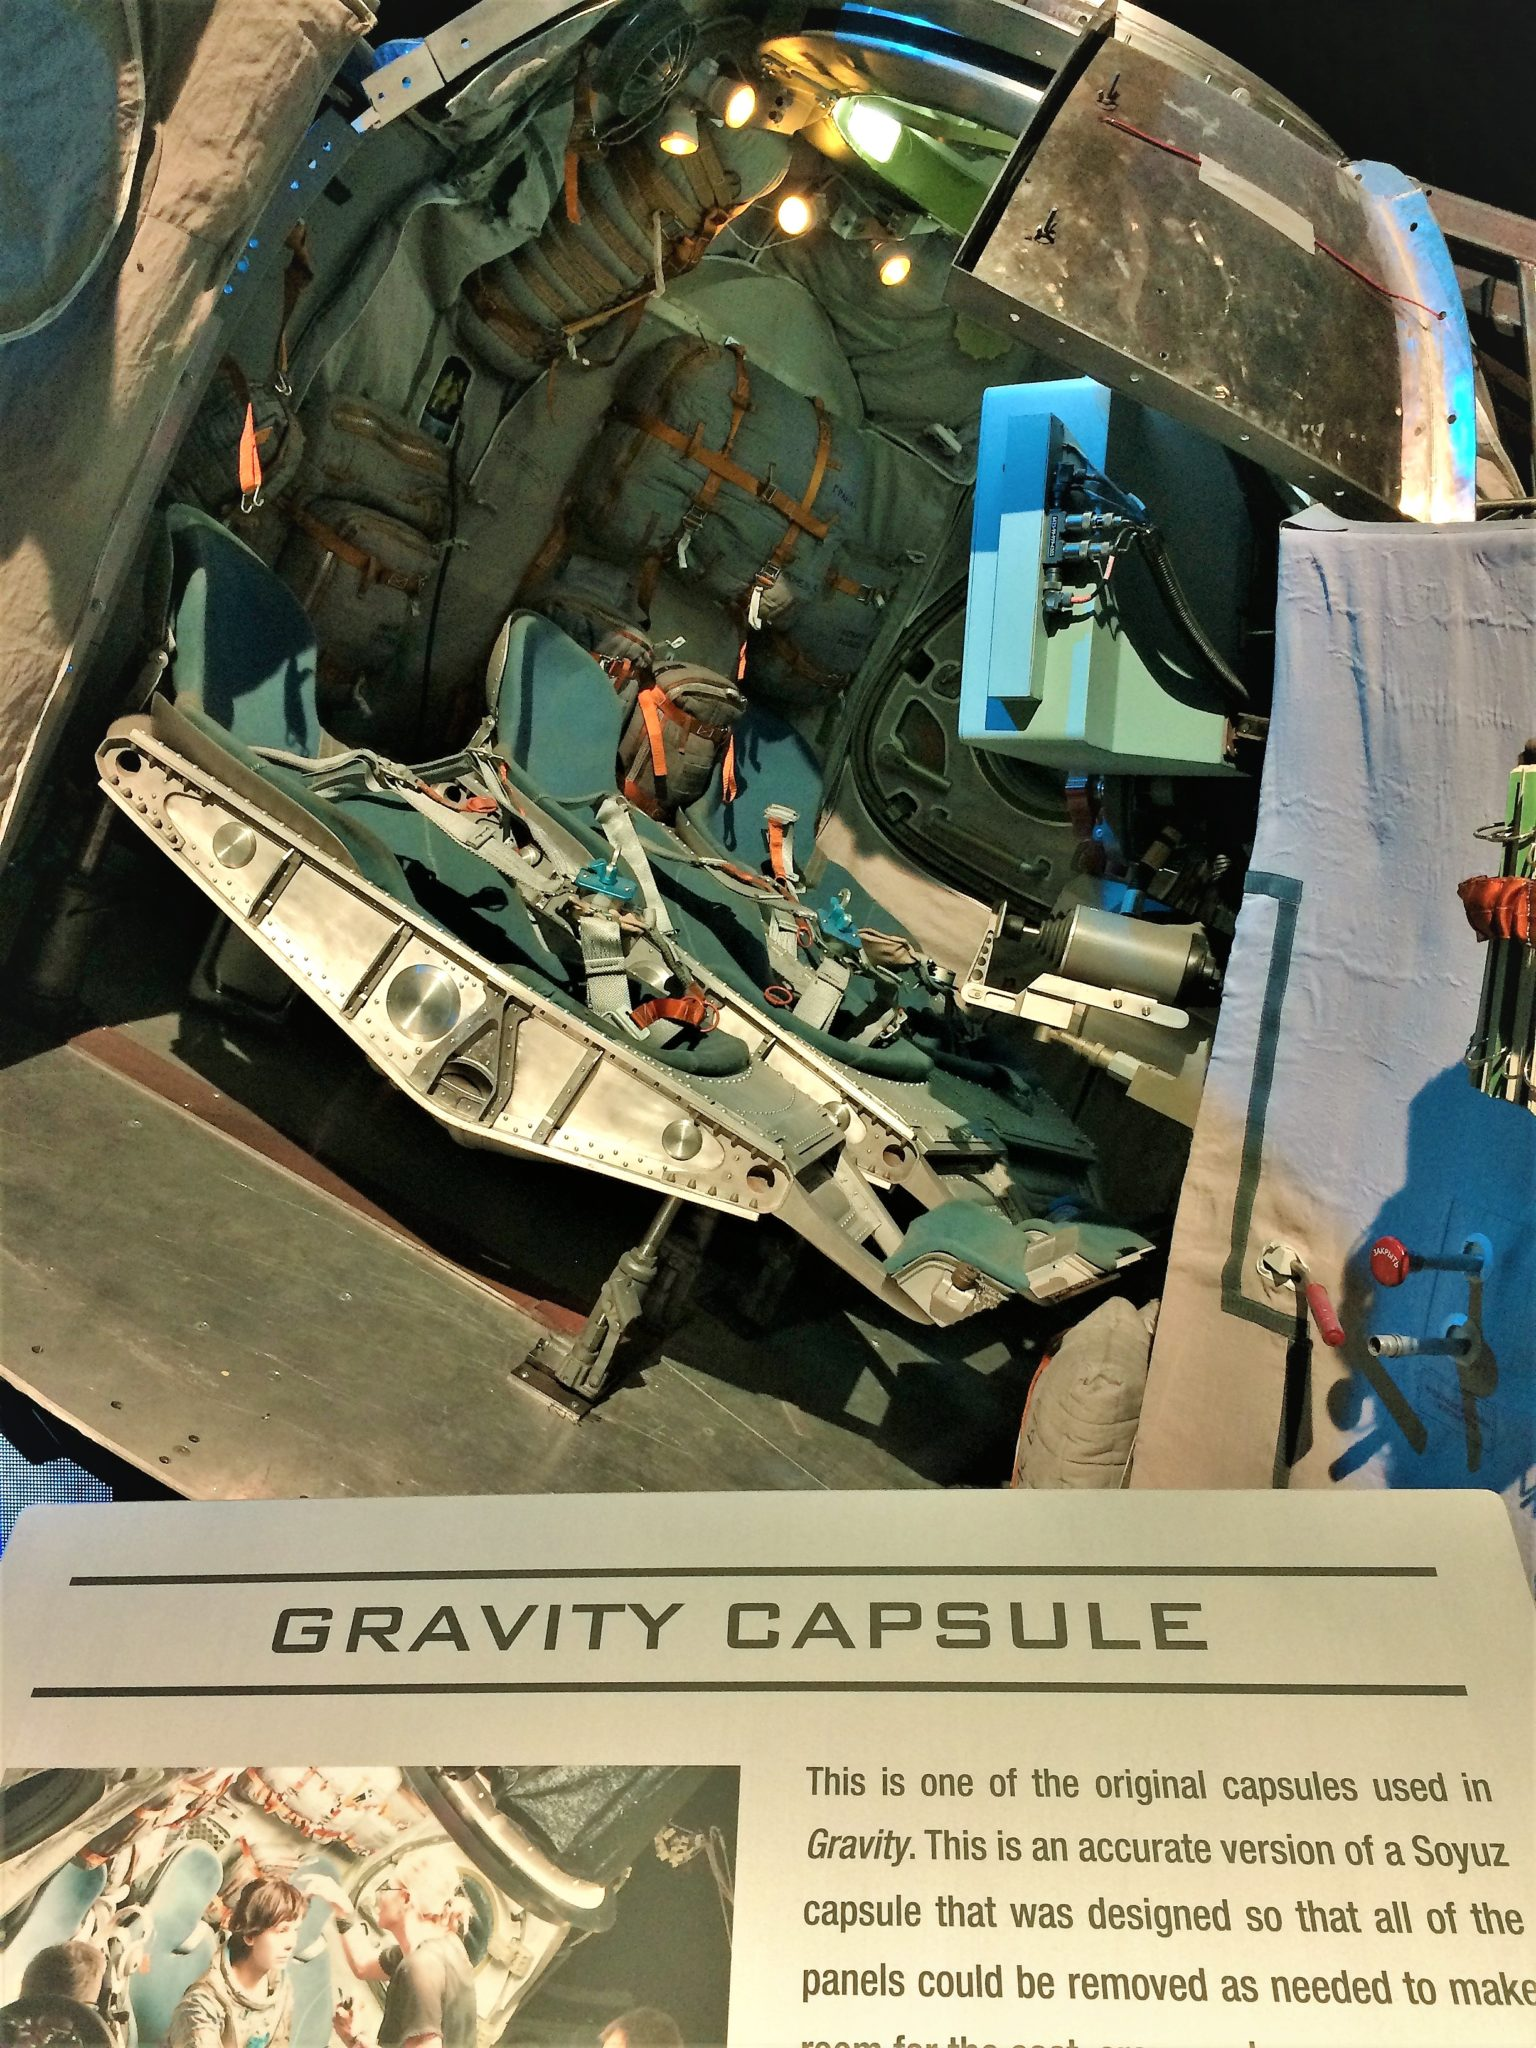 Original Gravity Capsule, Warner Brothers Studios, Things to do in los angeles